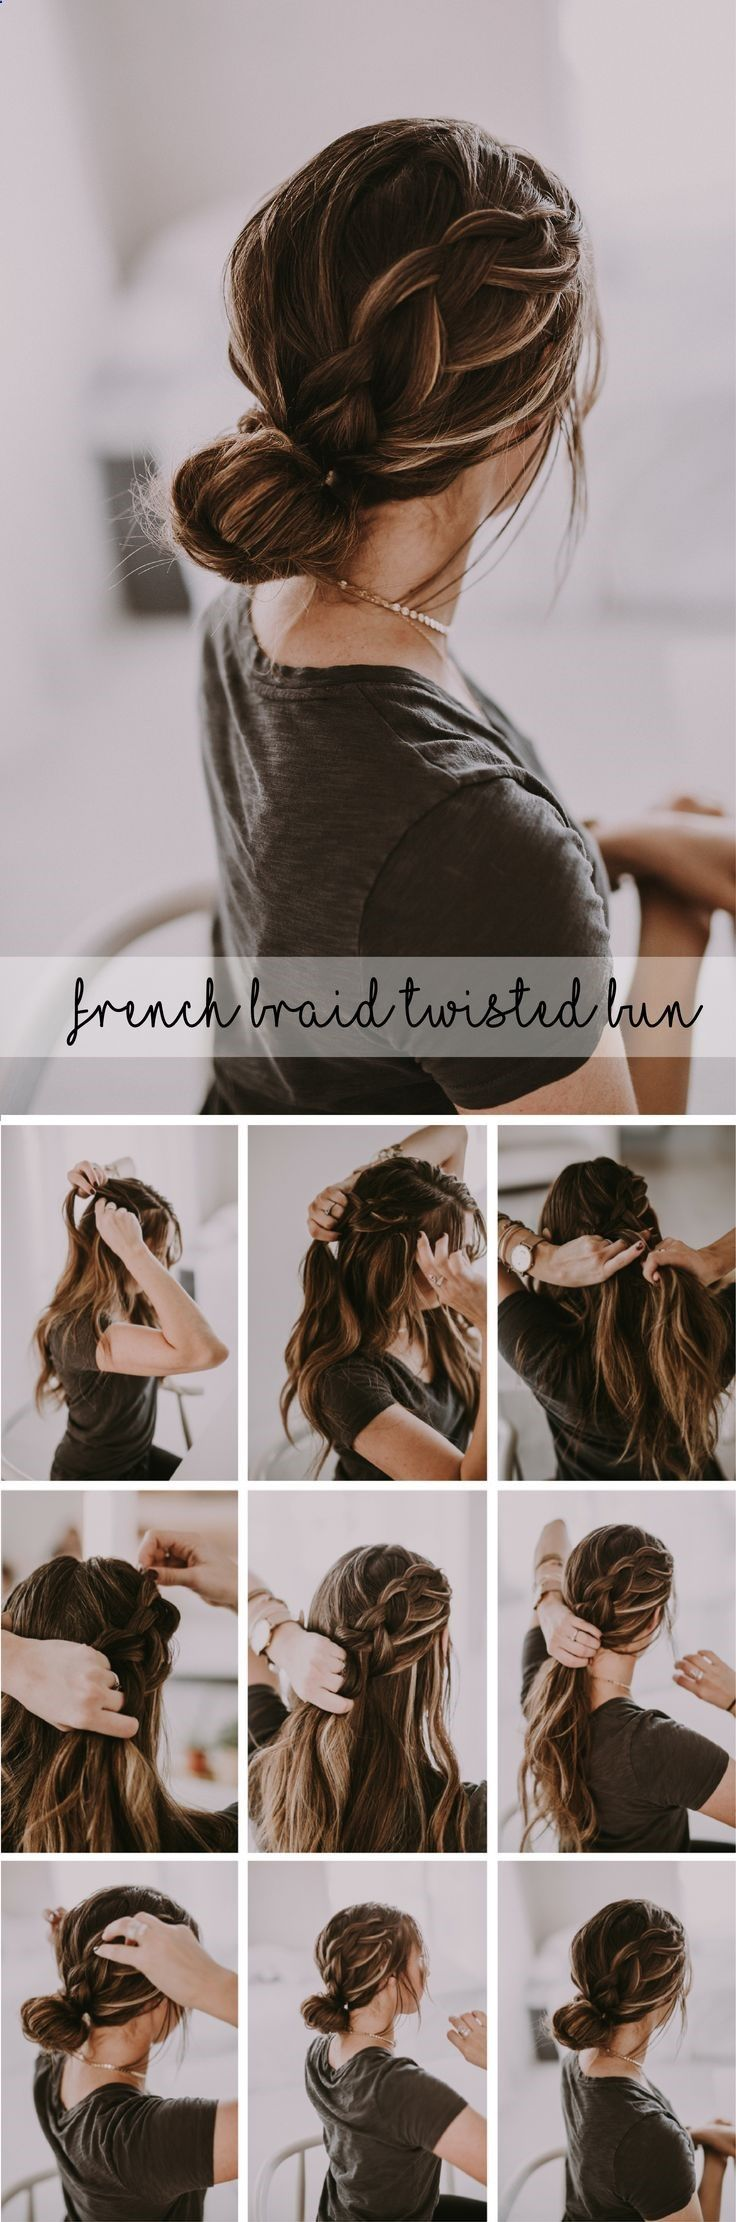 Beautiful french braid twisted bun updo hairstyle perfect dressed